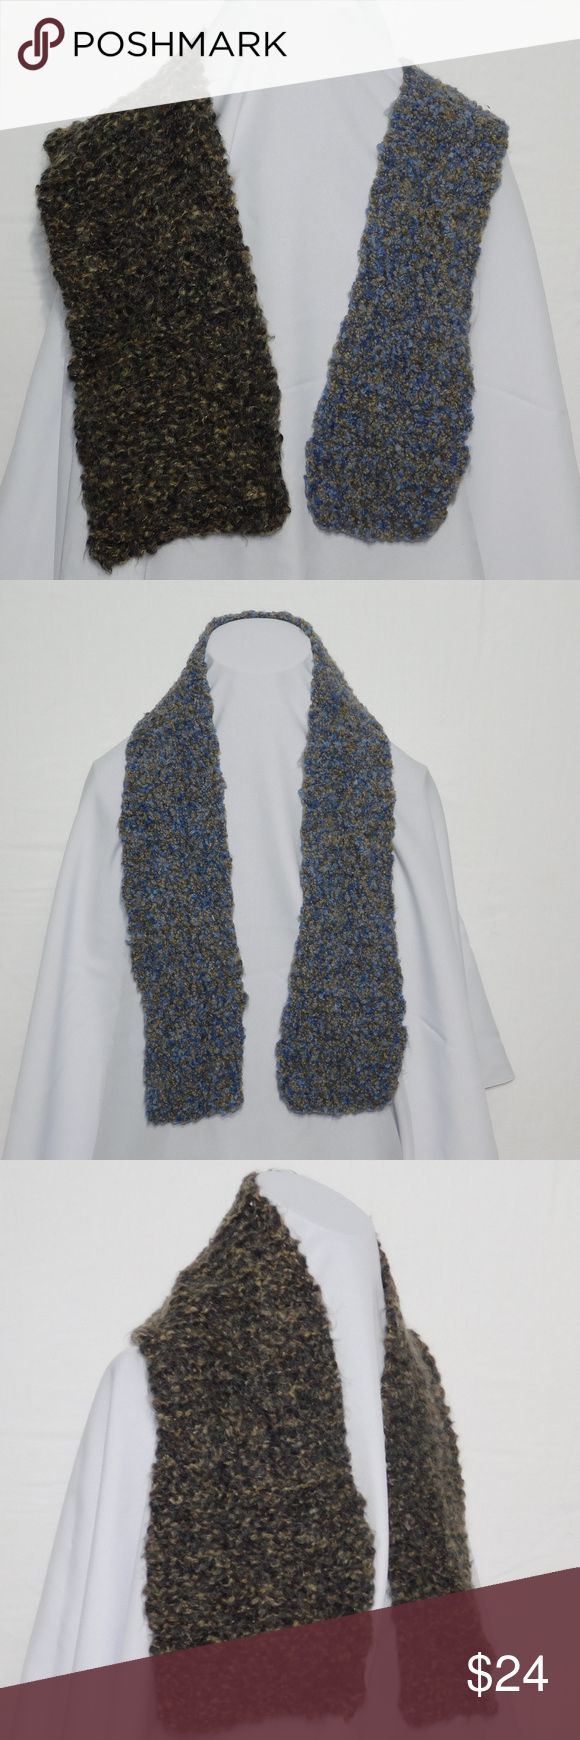 Offers of 40% Less on BUNDLES Always Accepted! TWO for the price of one! BOTH scarves come together in this one listing! Unisex, Men, Women and Kids but listed as Men. Scarf, multiple wrap around styles.    Knit, soft, stretchy, machine washable. ADD to a BUNDLE! Offers of 40% Less on BUNDLES Always Accepted! Accessories Scarves